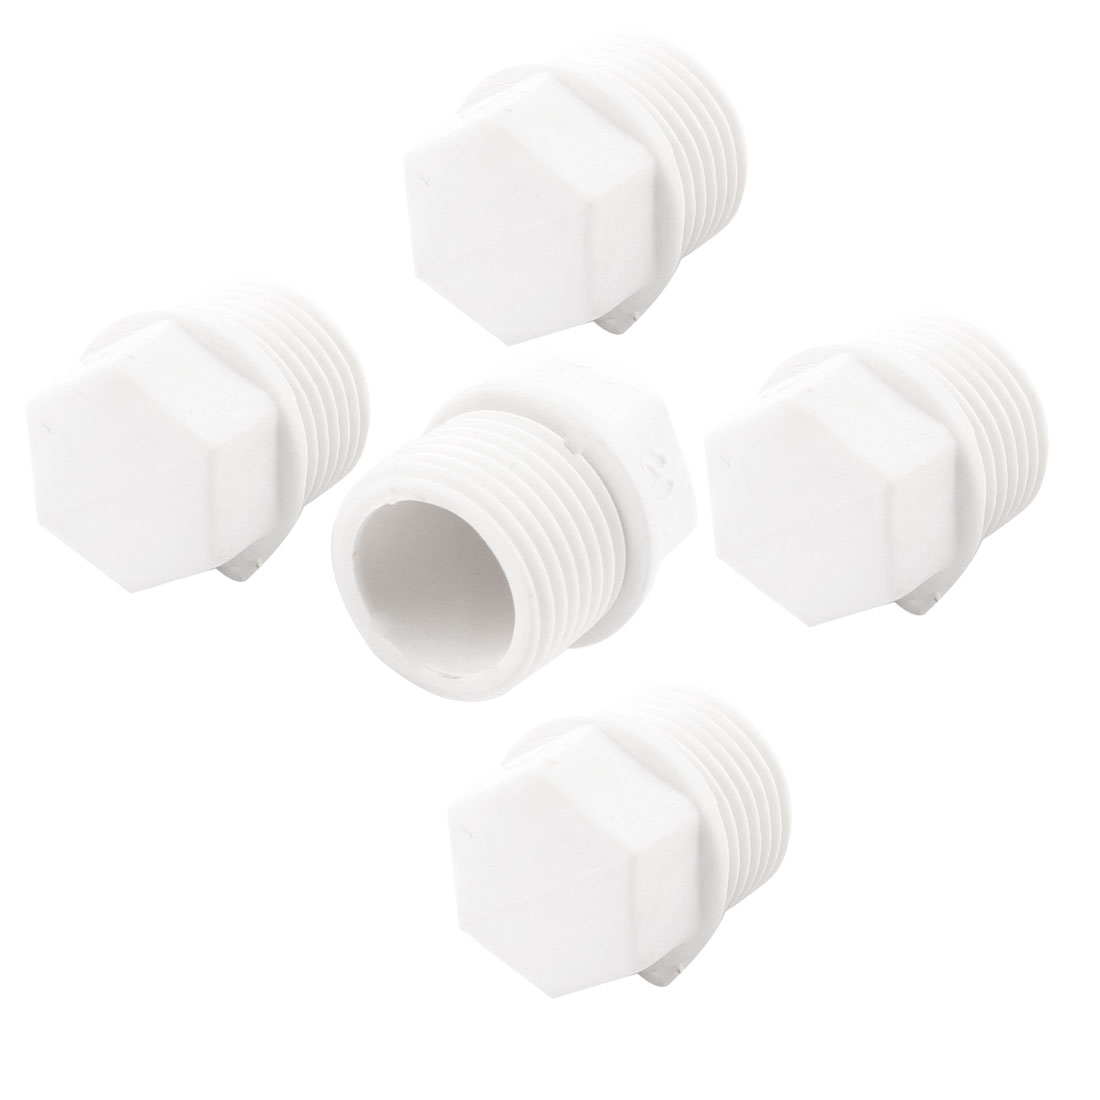 "5 Pieces 1/2"" PT Thread White Plastic Hex Head Pipe Plug Fitting"